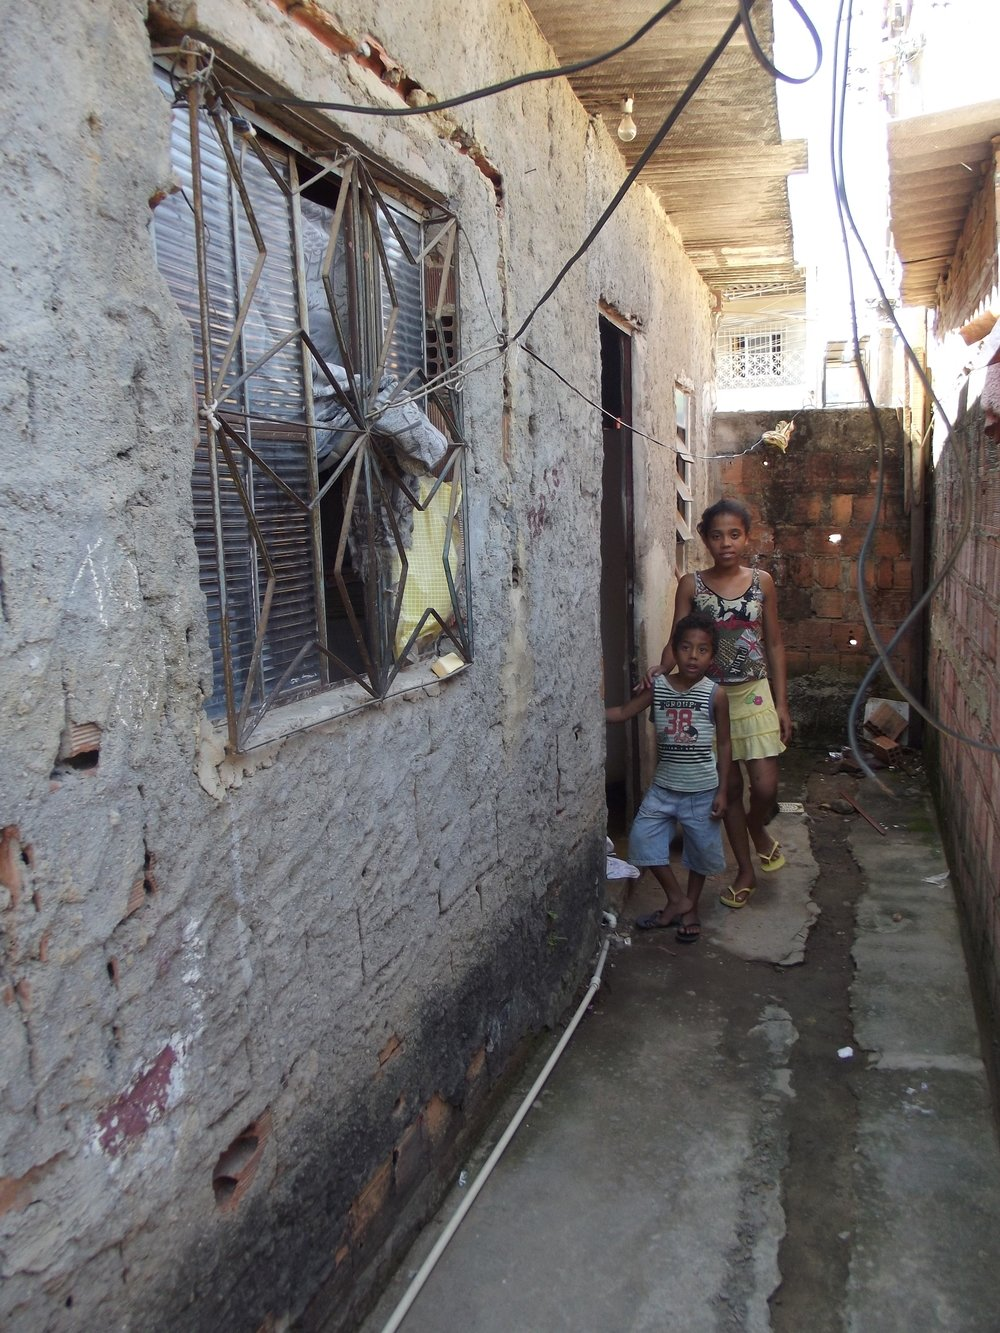 The kind of housing conditions that Associação Saúde Criança tackles in their approach to health